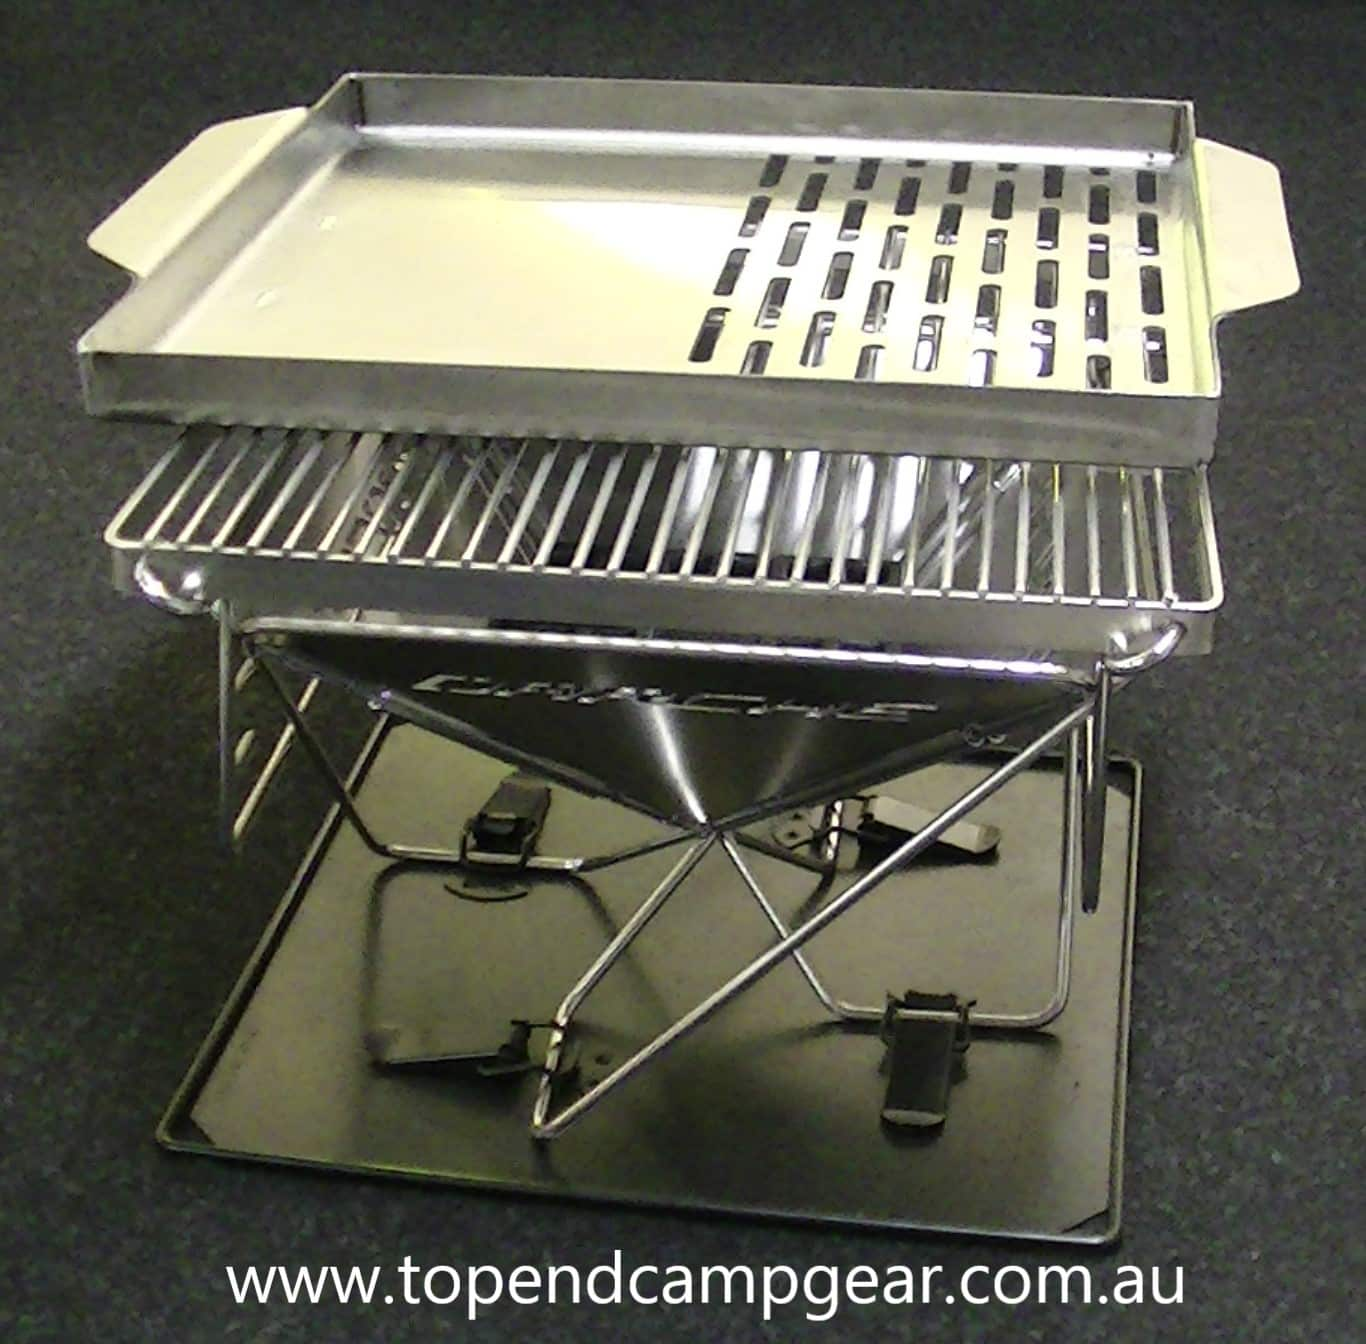 Fire Pit Gallery - https://www.topendcampgear.com.au/wp-content/uploads/2019/04/SS-Plate-on-a-310-BBQ-web.jpg